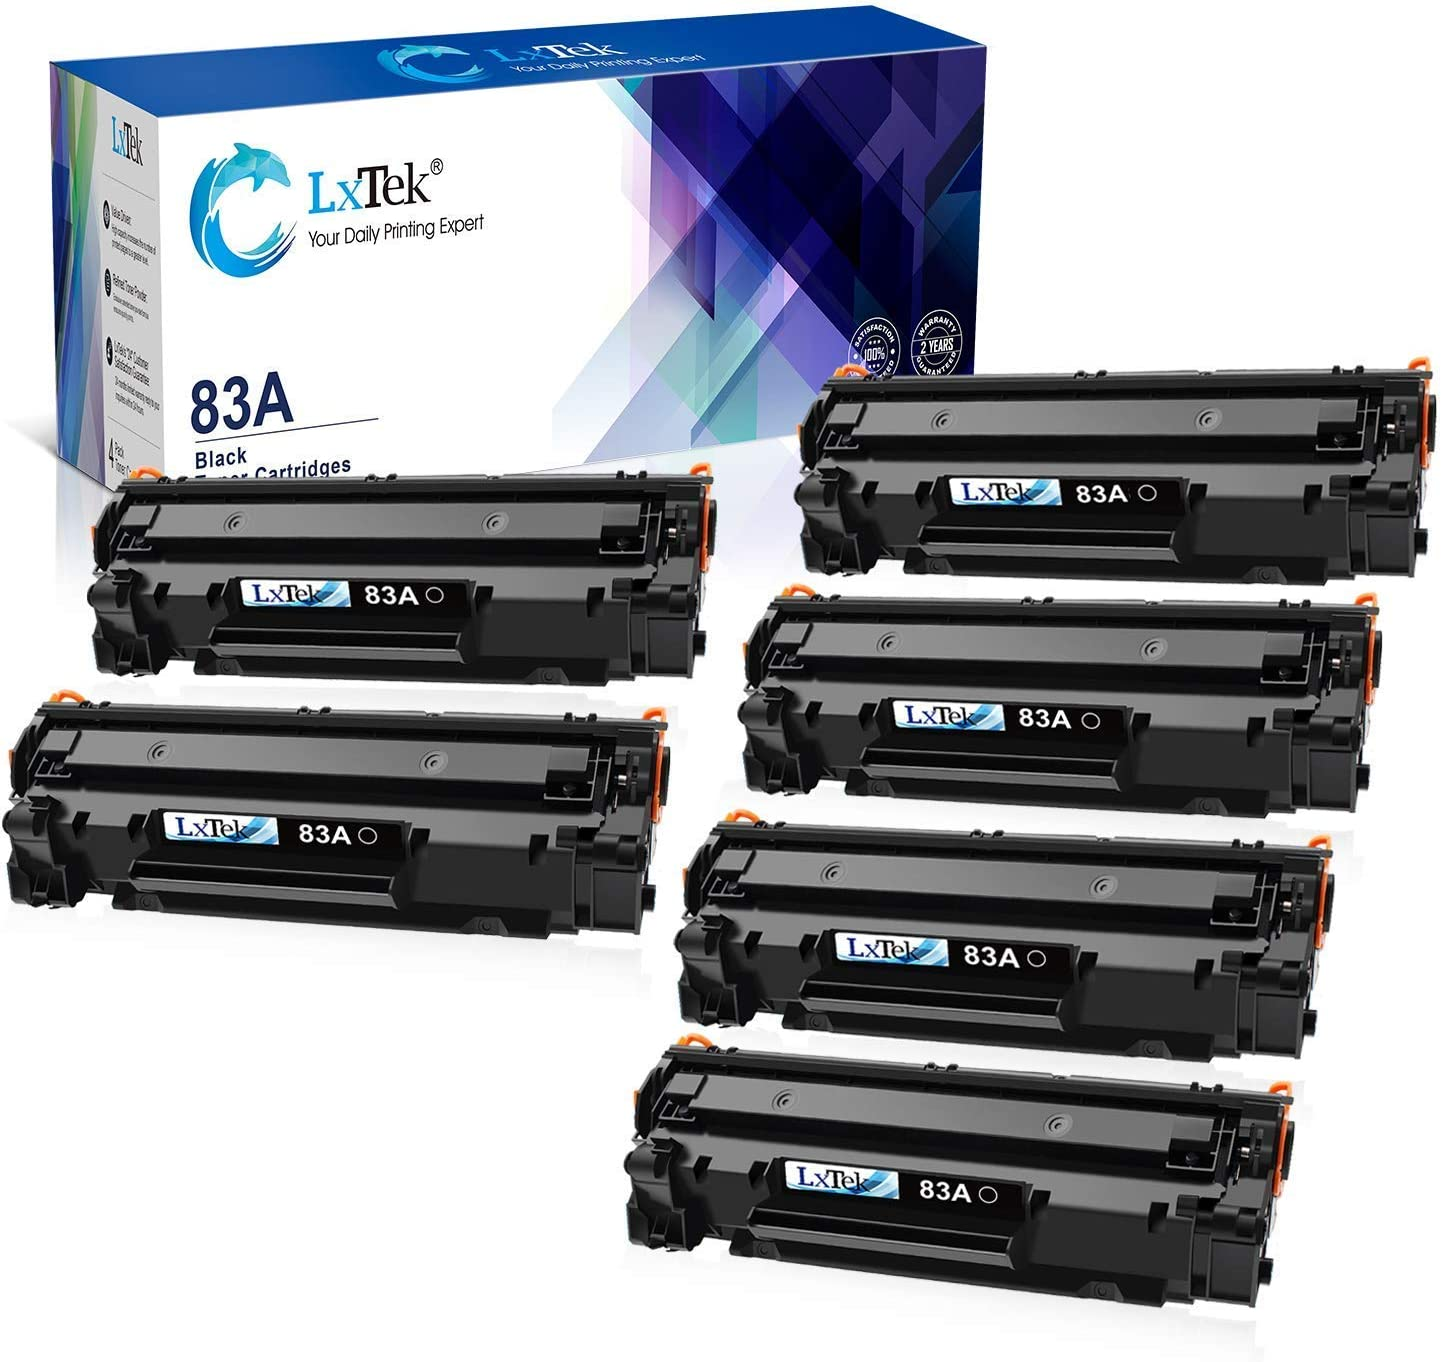 LxTek Compatible Toner Cartridge Replacement for HP 83A CF283A 2 Black Bundled with 4 Black (Total 6 Pack)